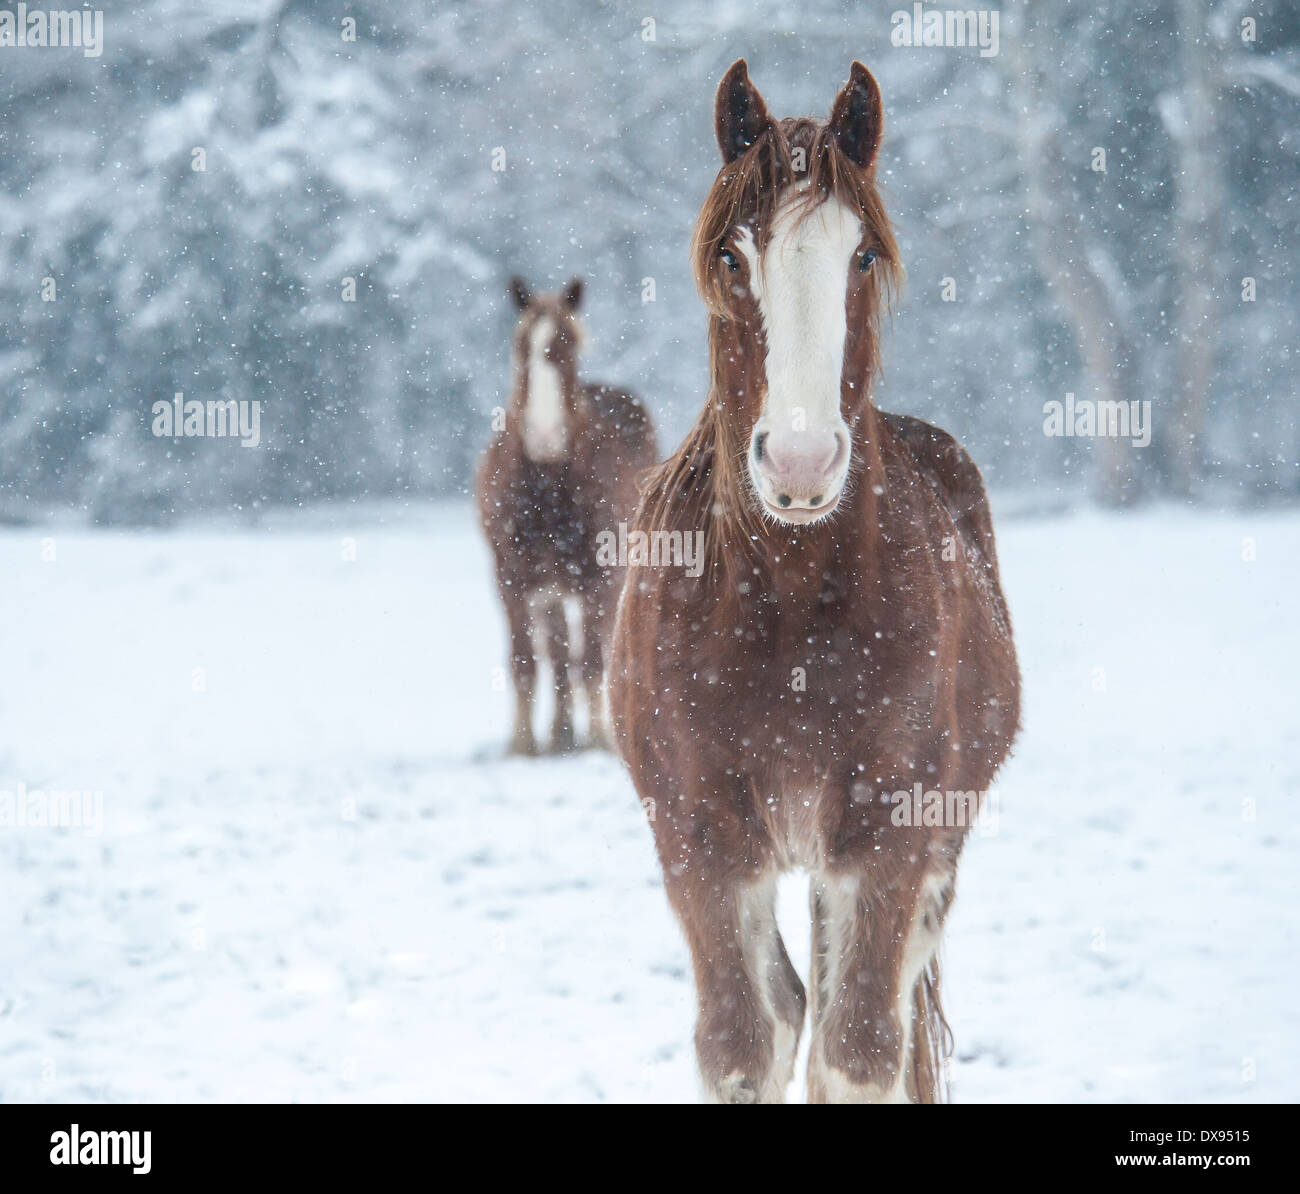 Draft Horse in snow storm - Stock Image